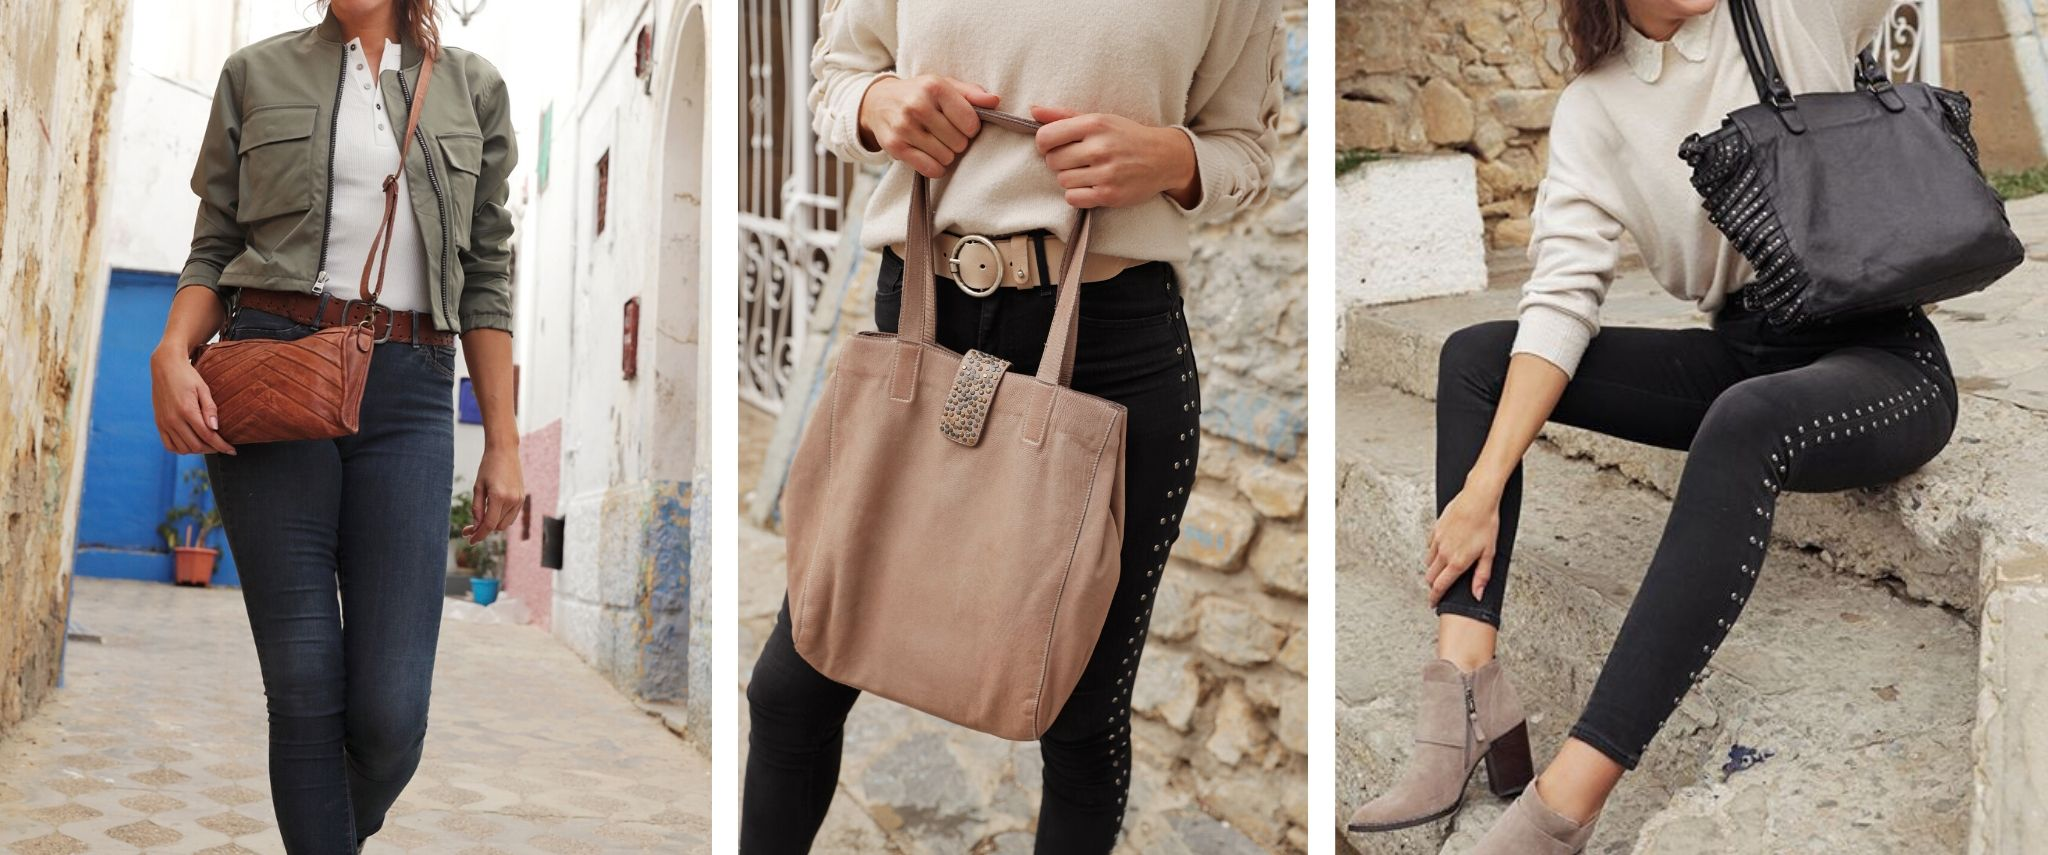 womens leather bags banner